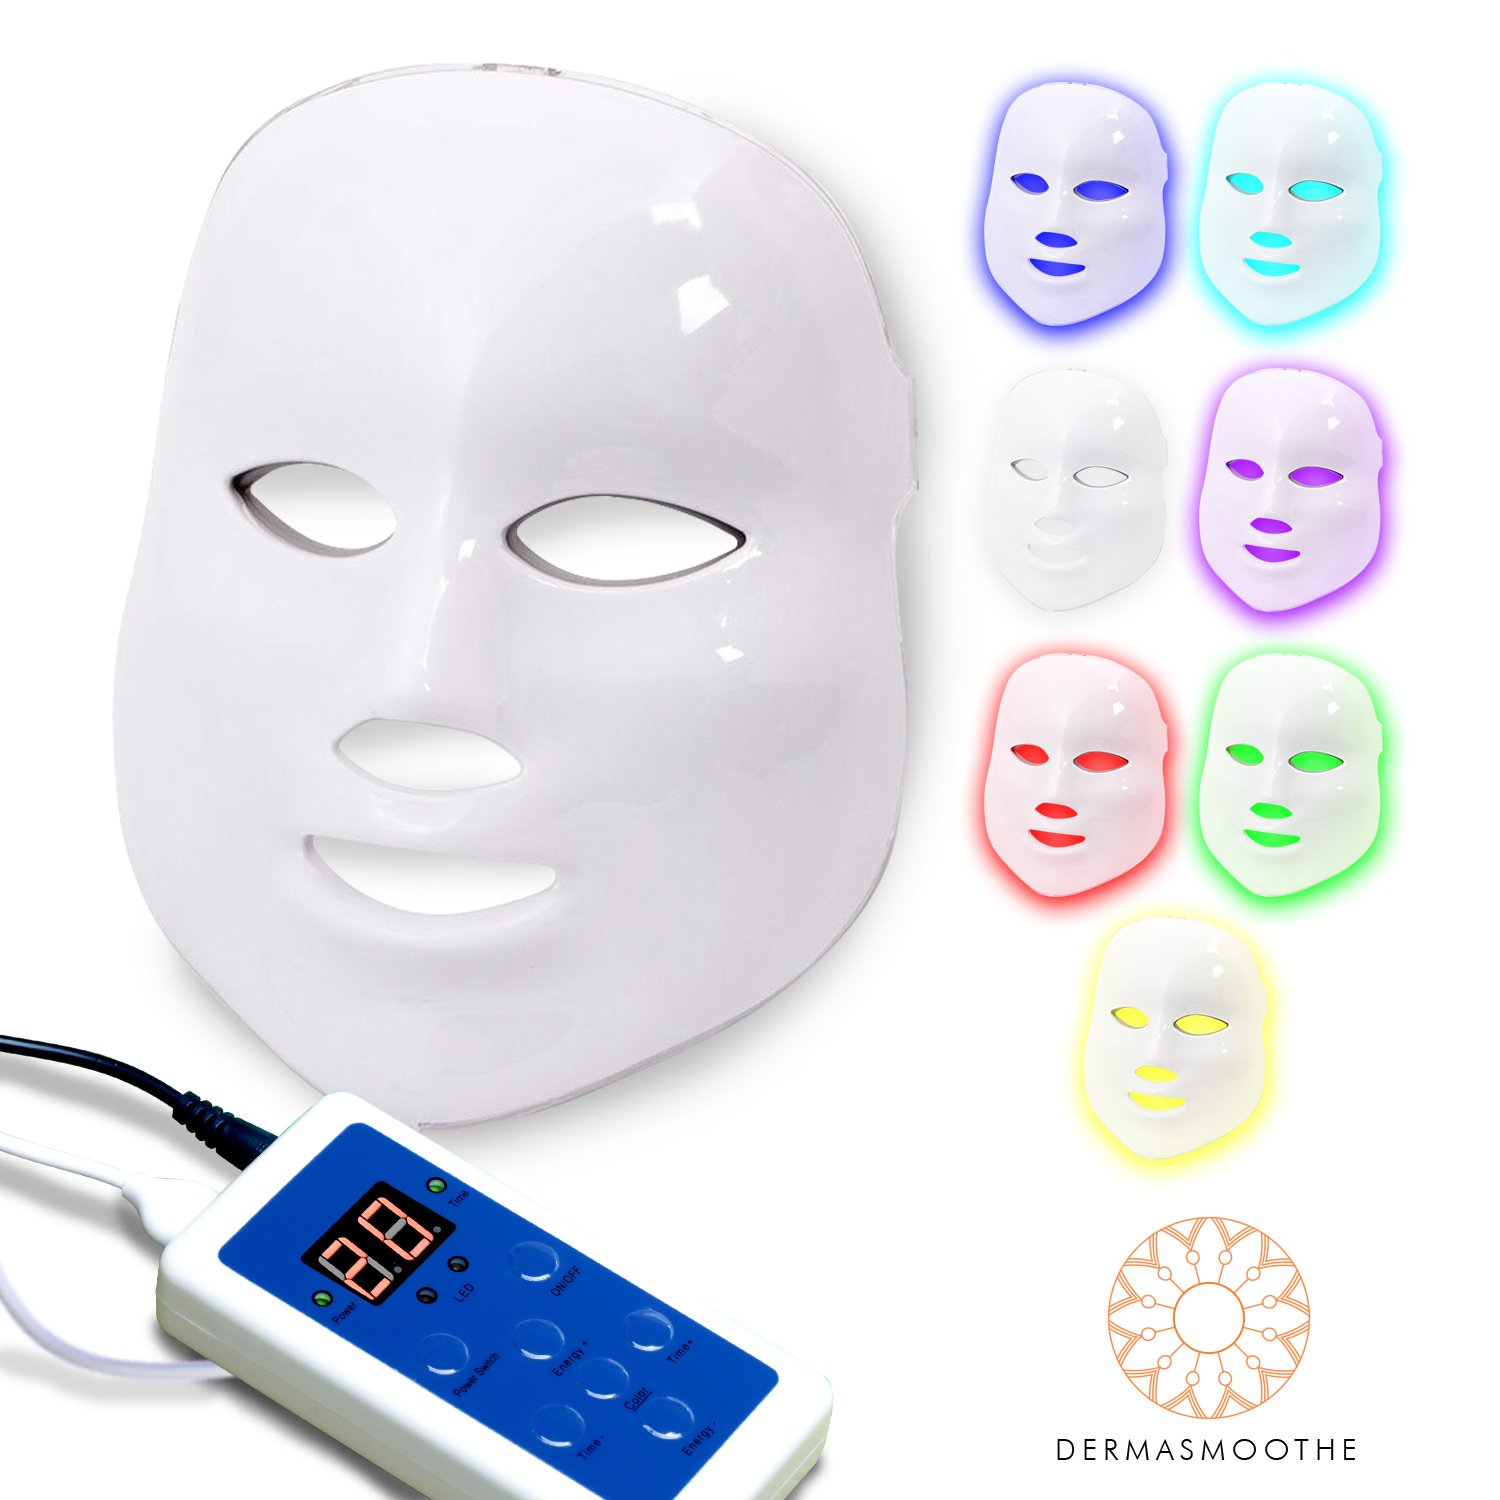 Dermasmoothe Pro 7 Color Led Face Mask | Photon Red Light Therapy For Healthy Skin Rejuvenation | Collagen, Anti Aging, Wrinkles, Scarring | Korean Skin Care,... by Dermasmoothe